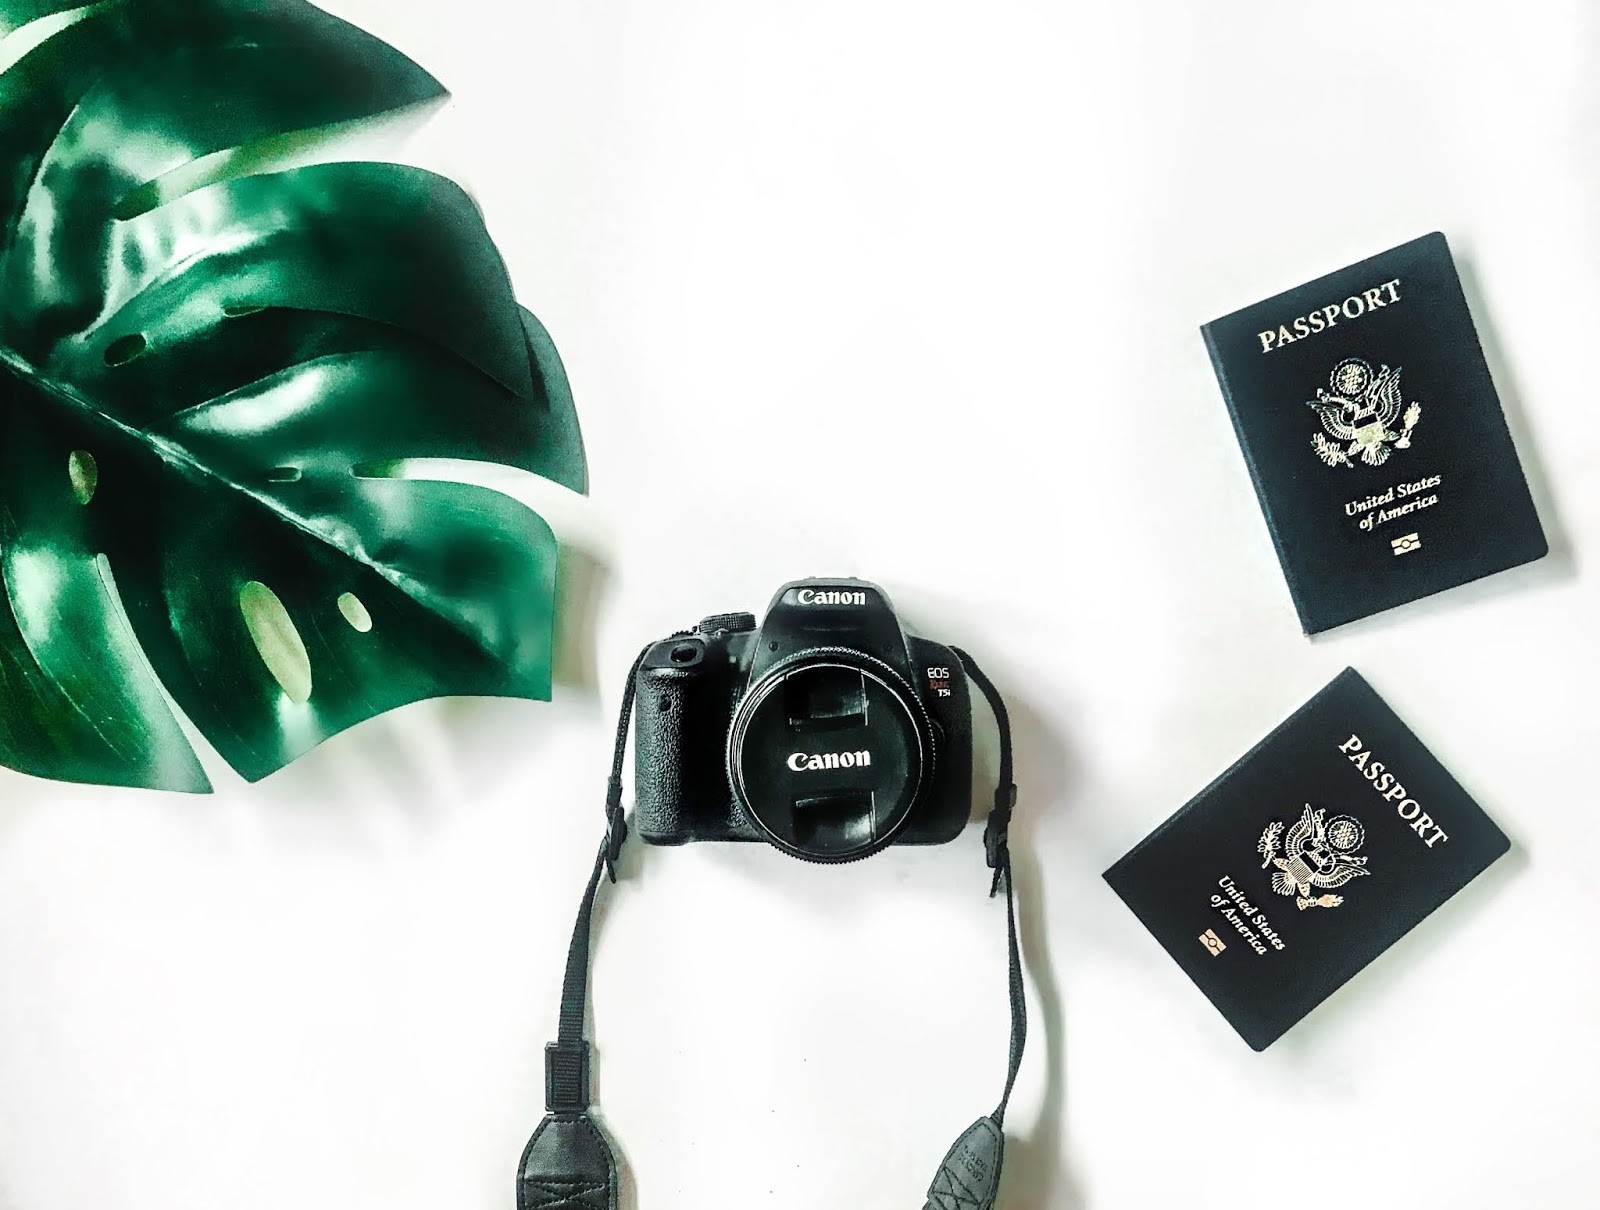 how to take your own passport photo at home